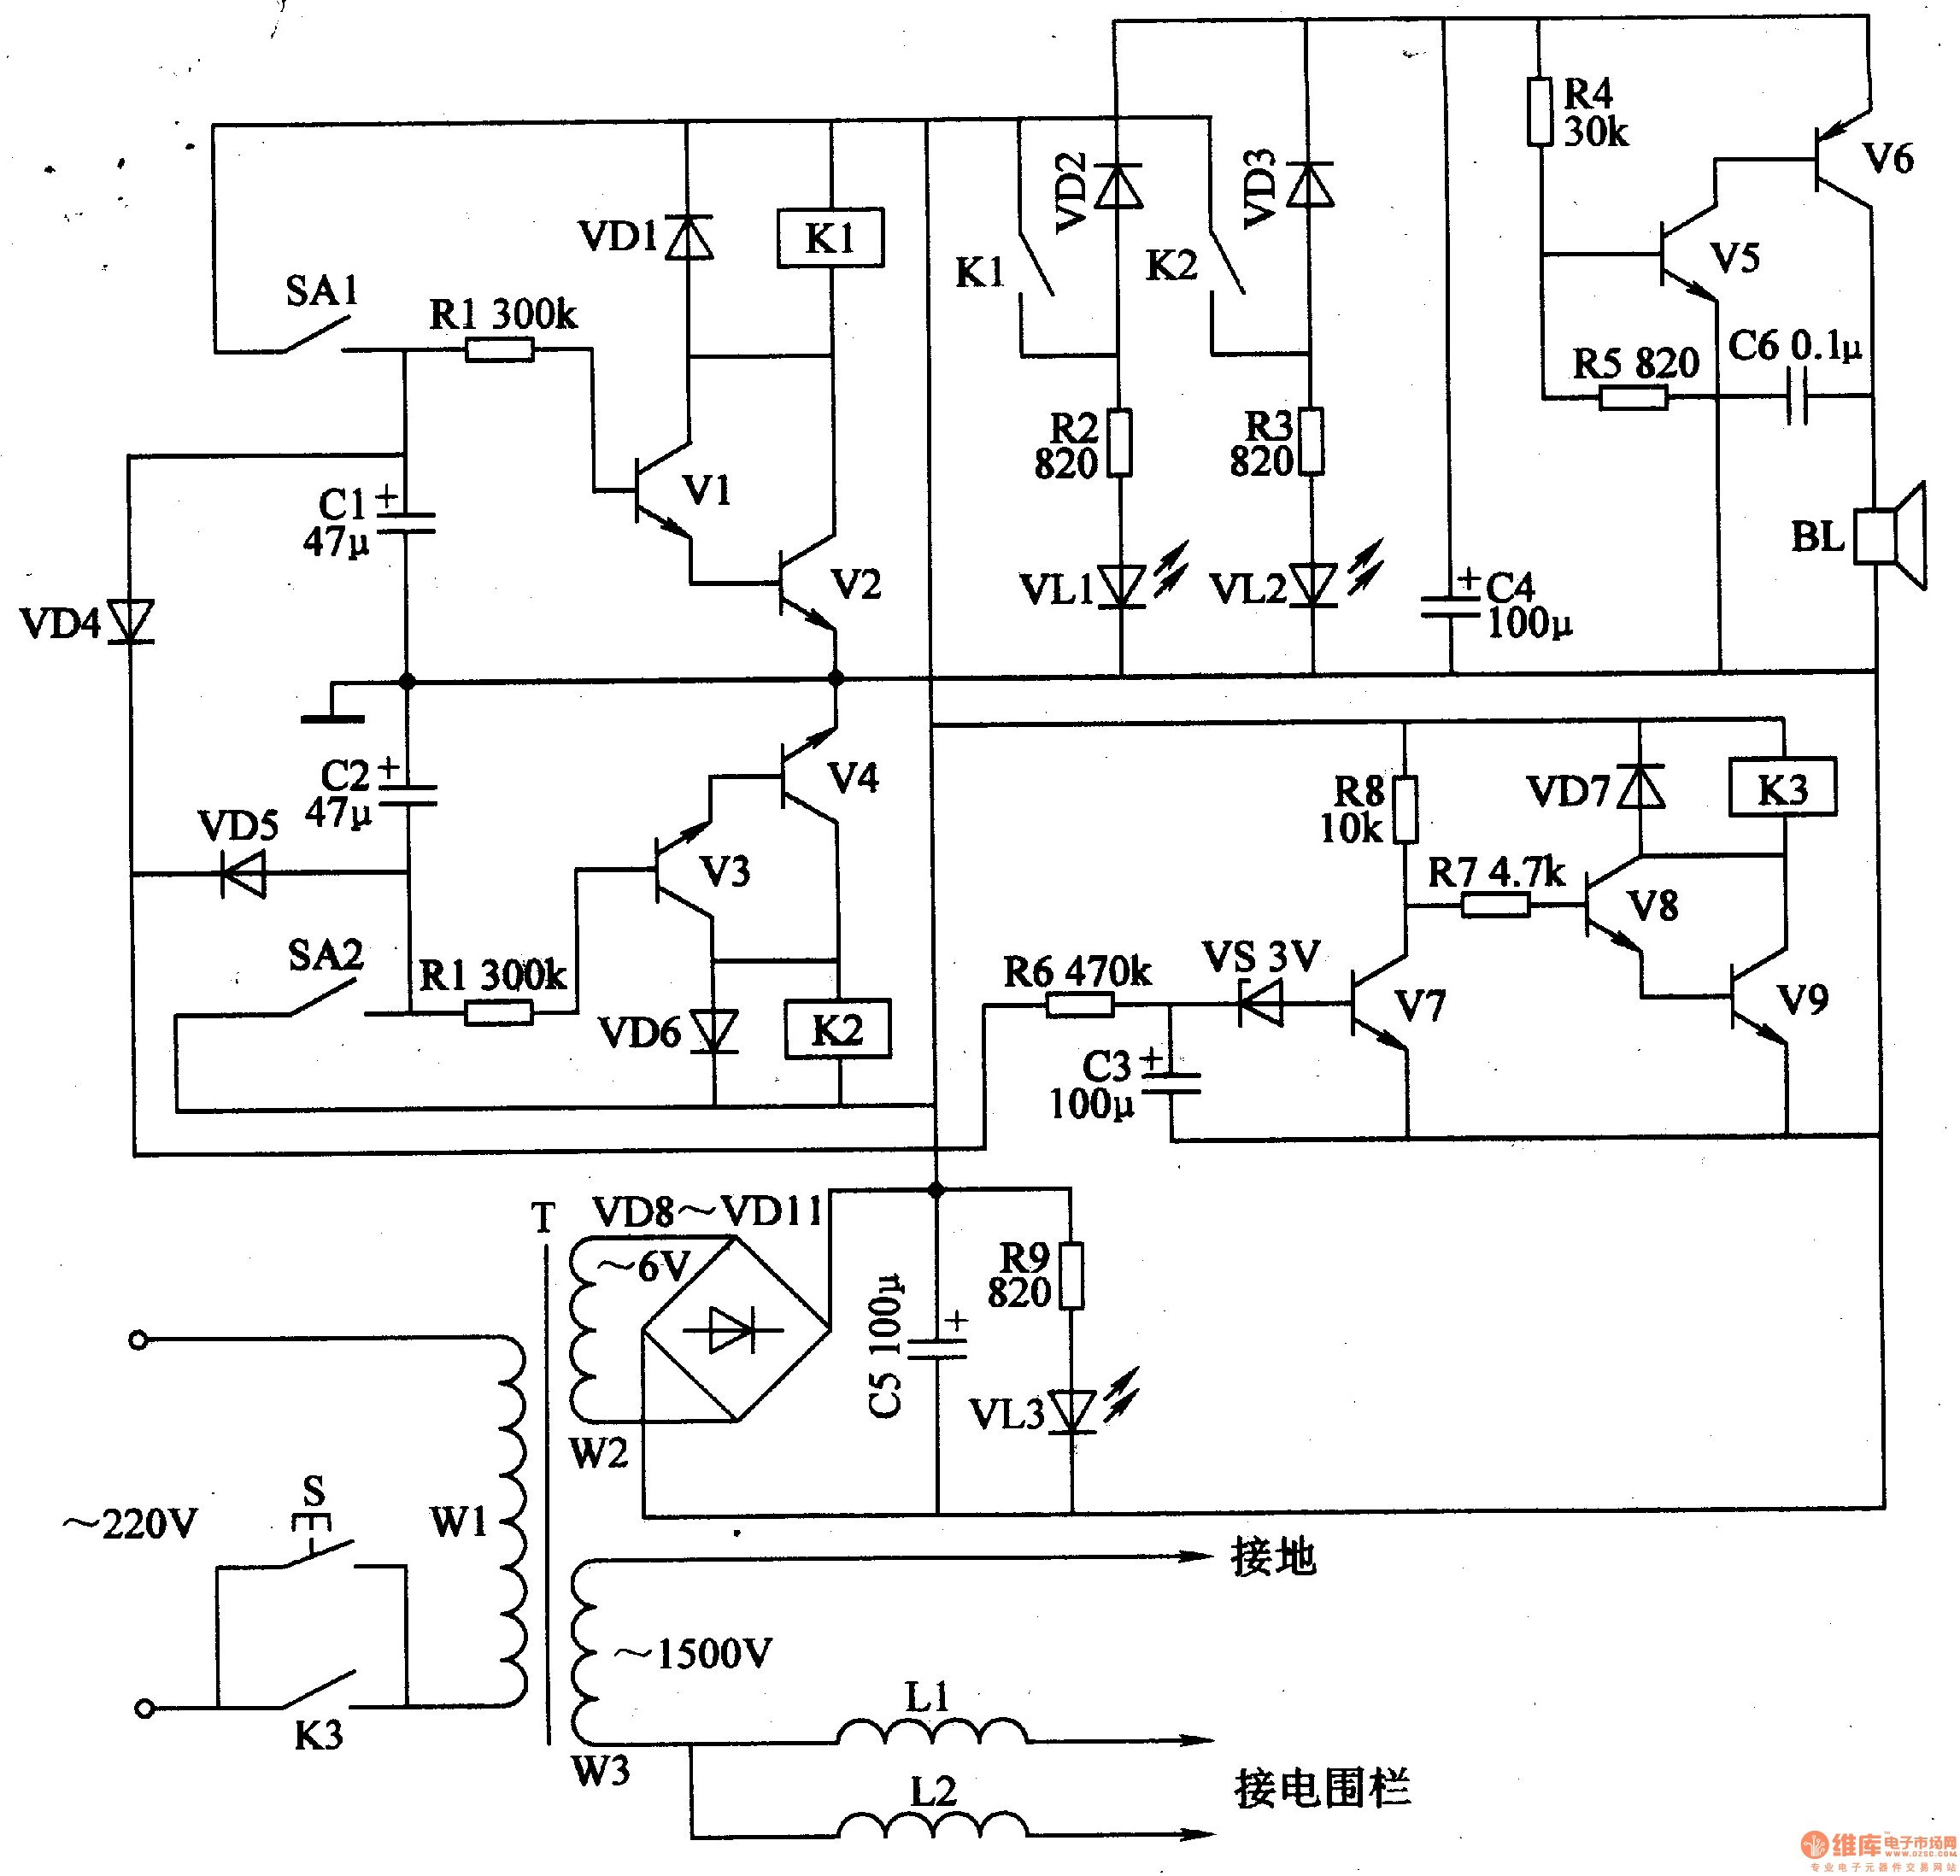 invisible fence wiring diagram Download-Wiring Diagram Electric Fence Refrence Wiring Diagram Electric Shower New Invisible Fence Wiring Diagram 5-r